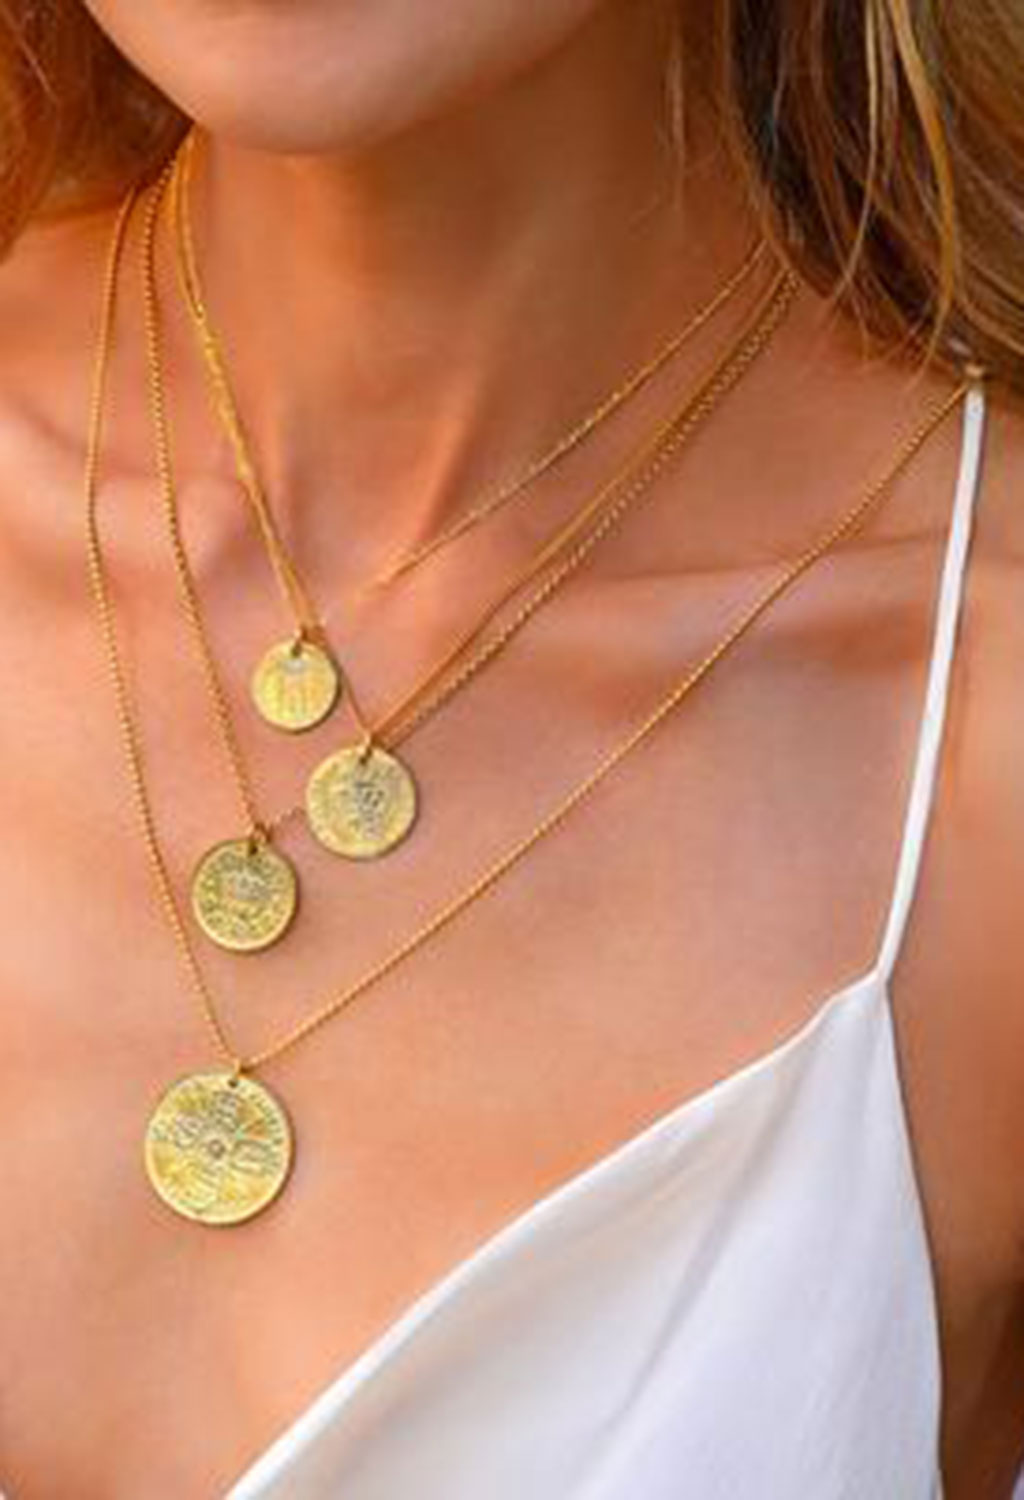 Monaco Coin Necklace 27""